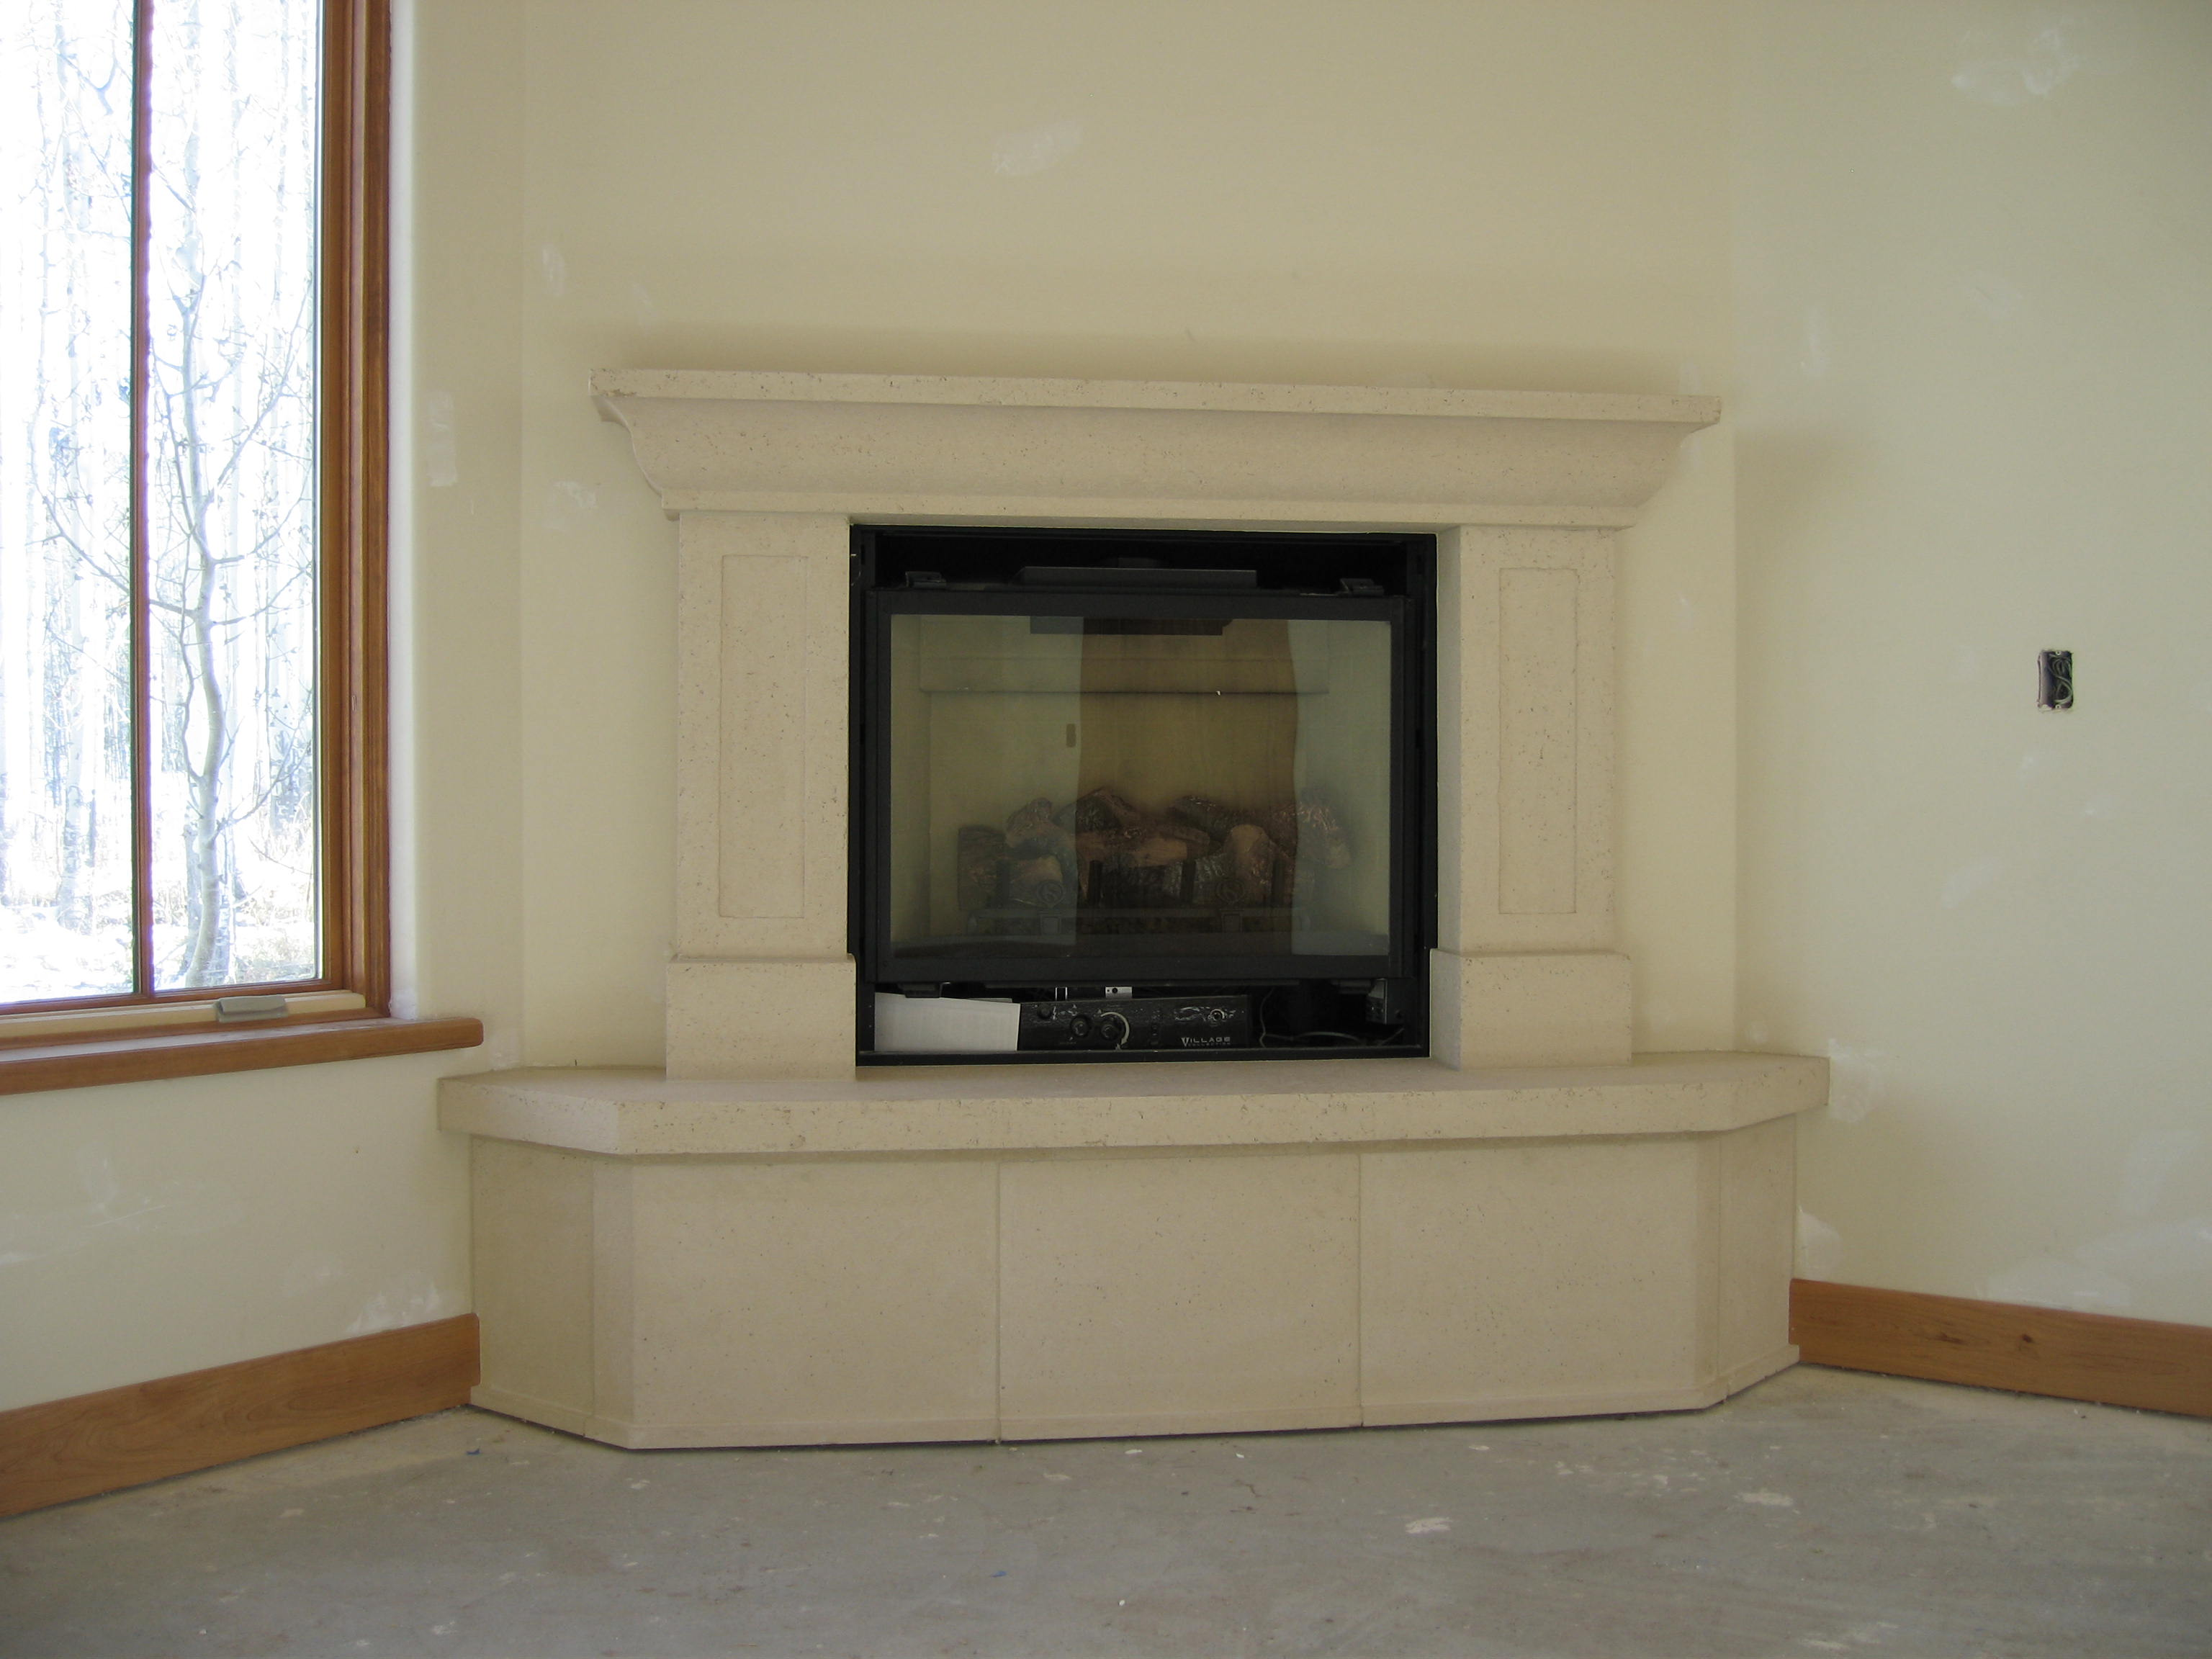 design corner fireplace mantels corner fireplace mantels and surrounds corner fireplace mantels ideas - Corner Gas Fireplace Design Ideas